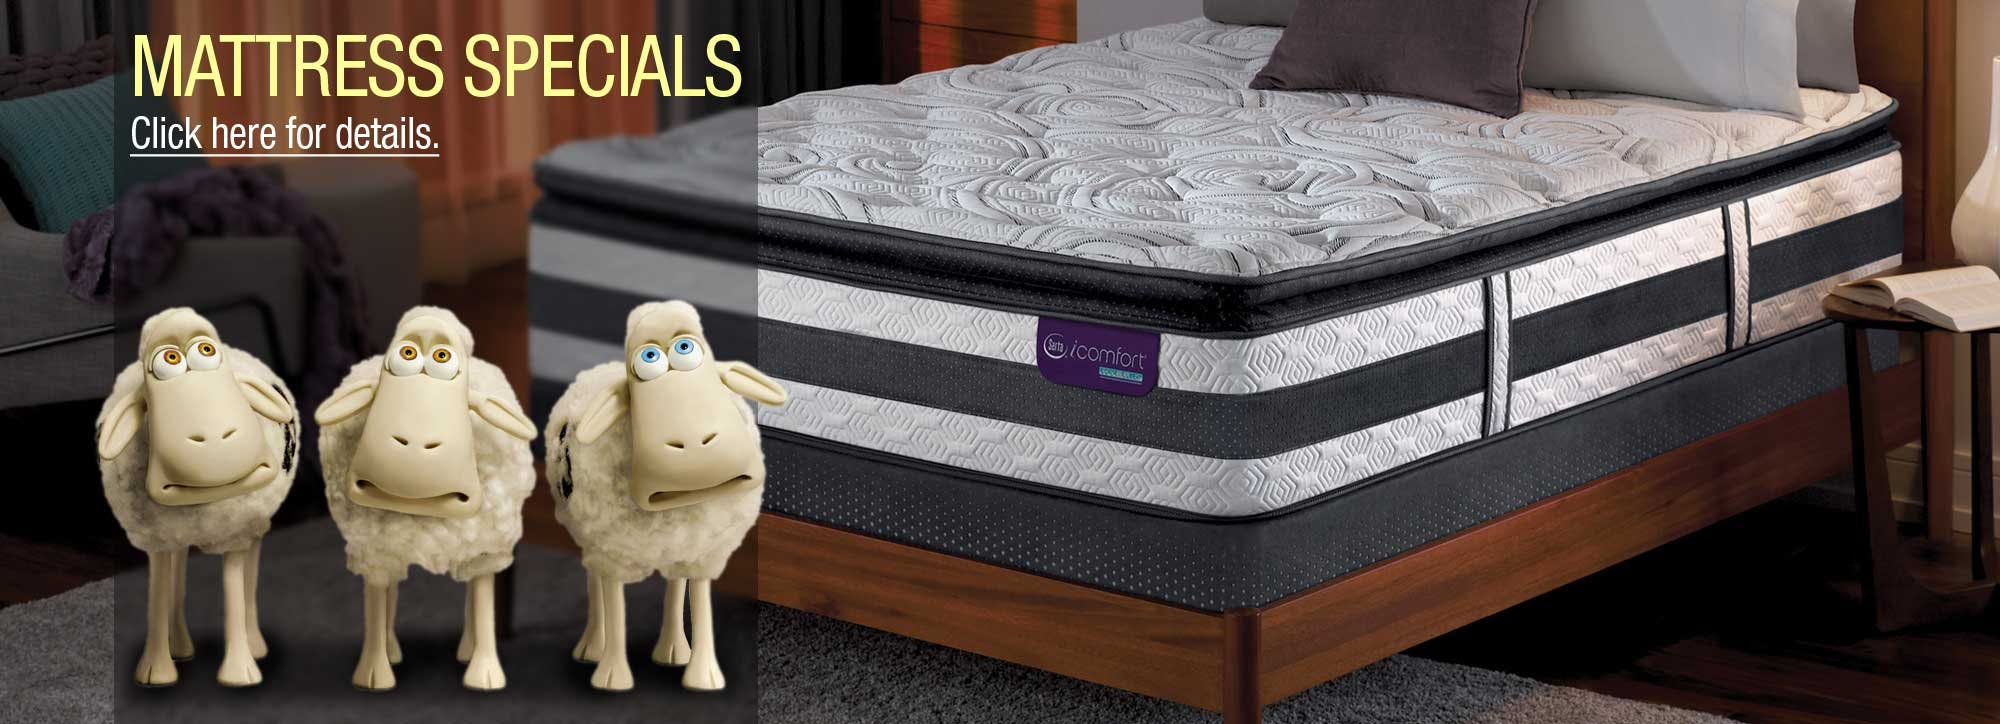 Shop for Mattress Specials in Cincinnati and Dayton OH